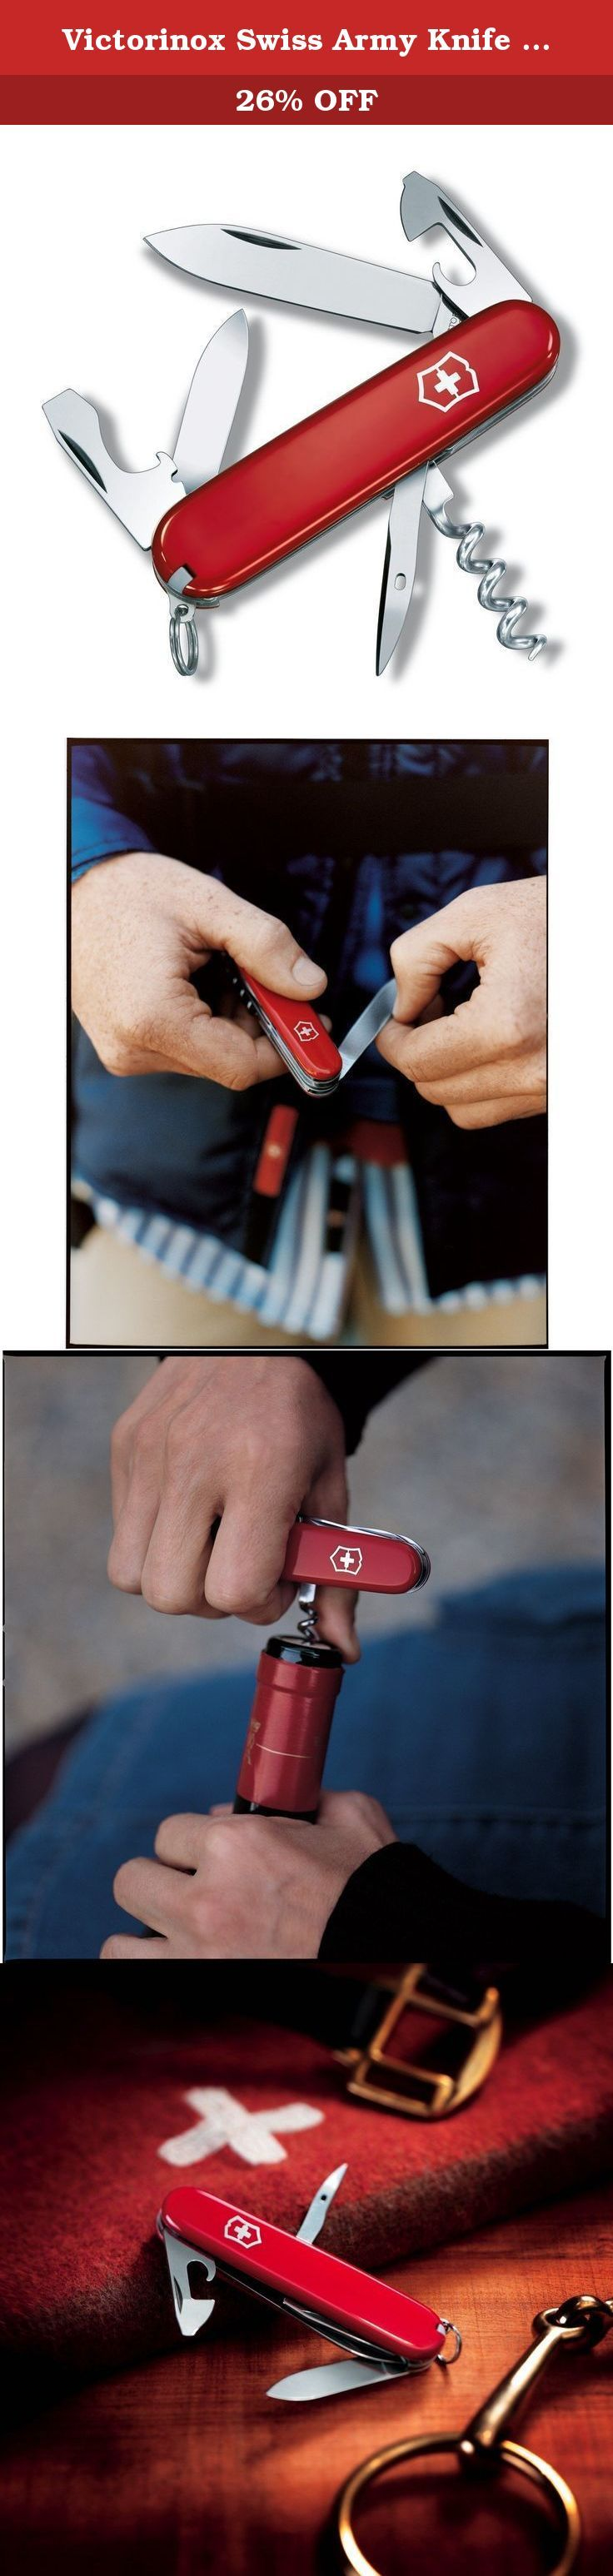 Victorinox Swiss Army Knife Spartan (Red). The product is Spartan Swiss Army Knife. Easy to use. The product is manufactured in China.